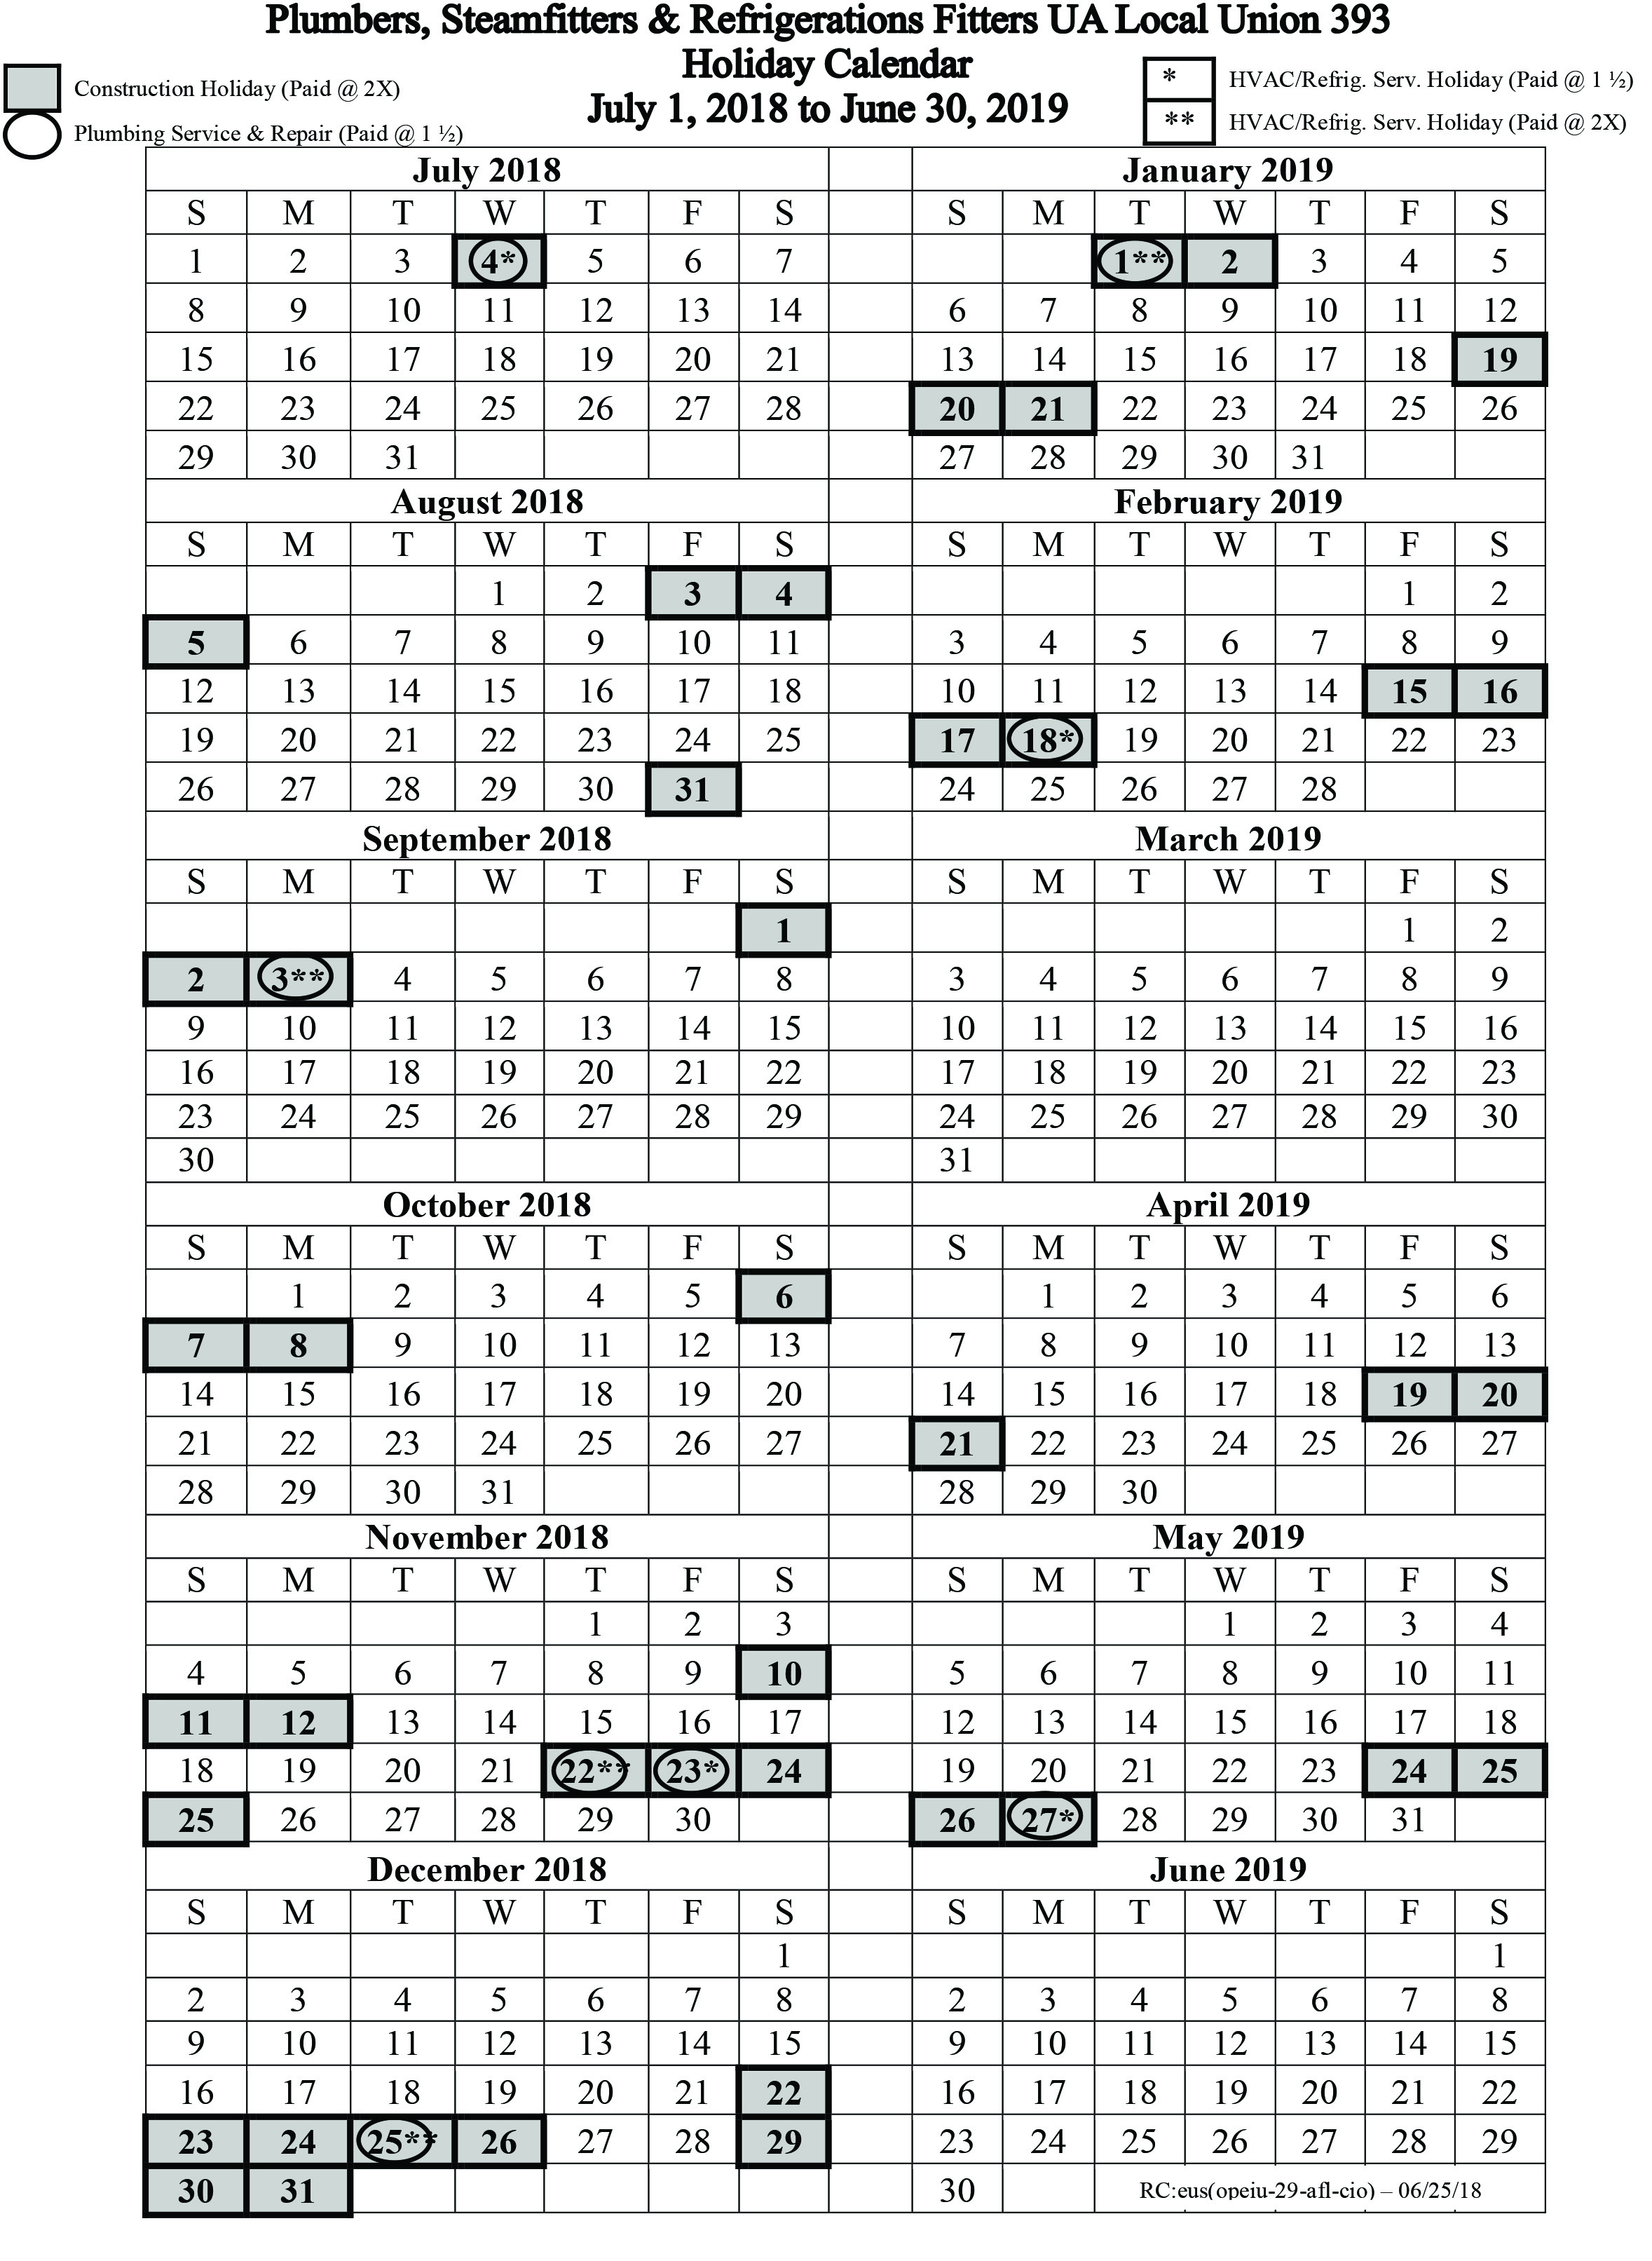 School Calendar Year 2019 Mauritius With July 1 2018 June 30 Holiday Local 393